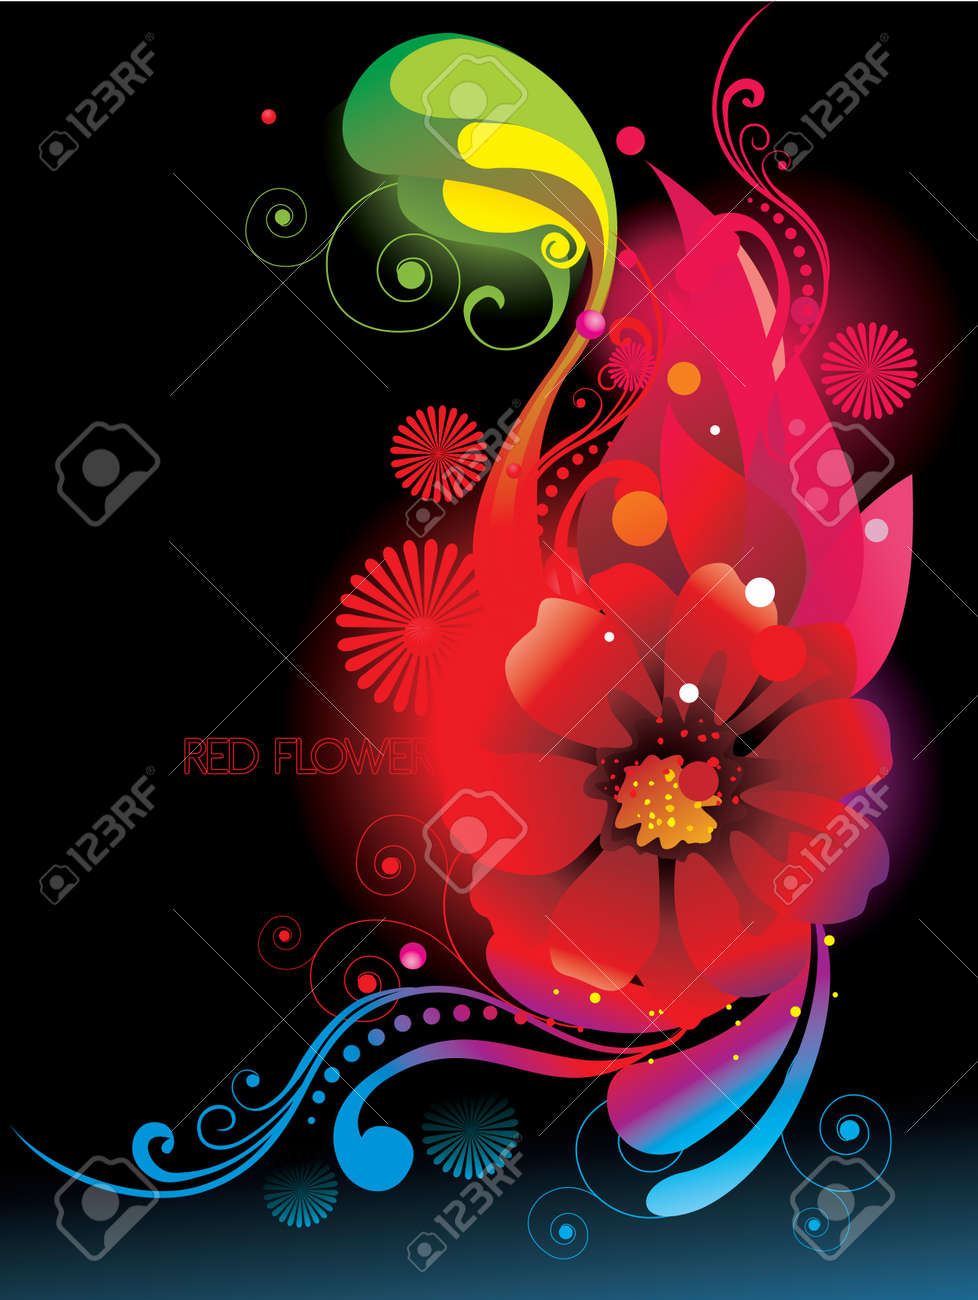 neon flowers over a black background royalty free cliparts vectors